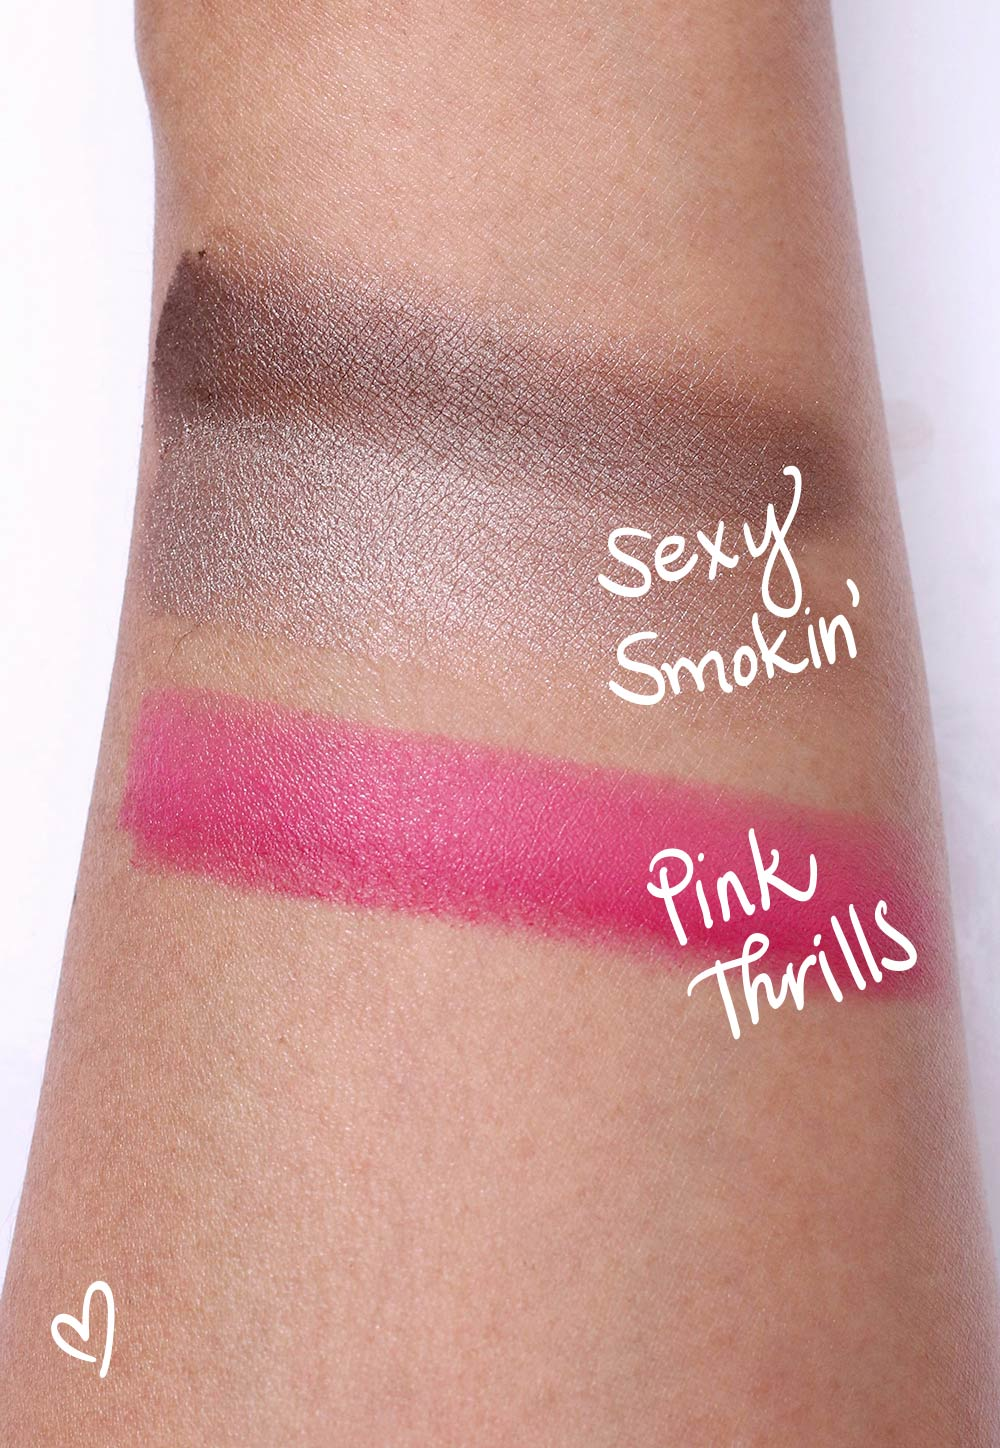 benefit theyre real sexy smokin pink thrills